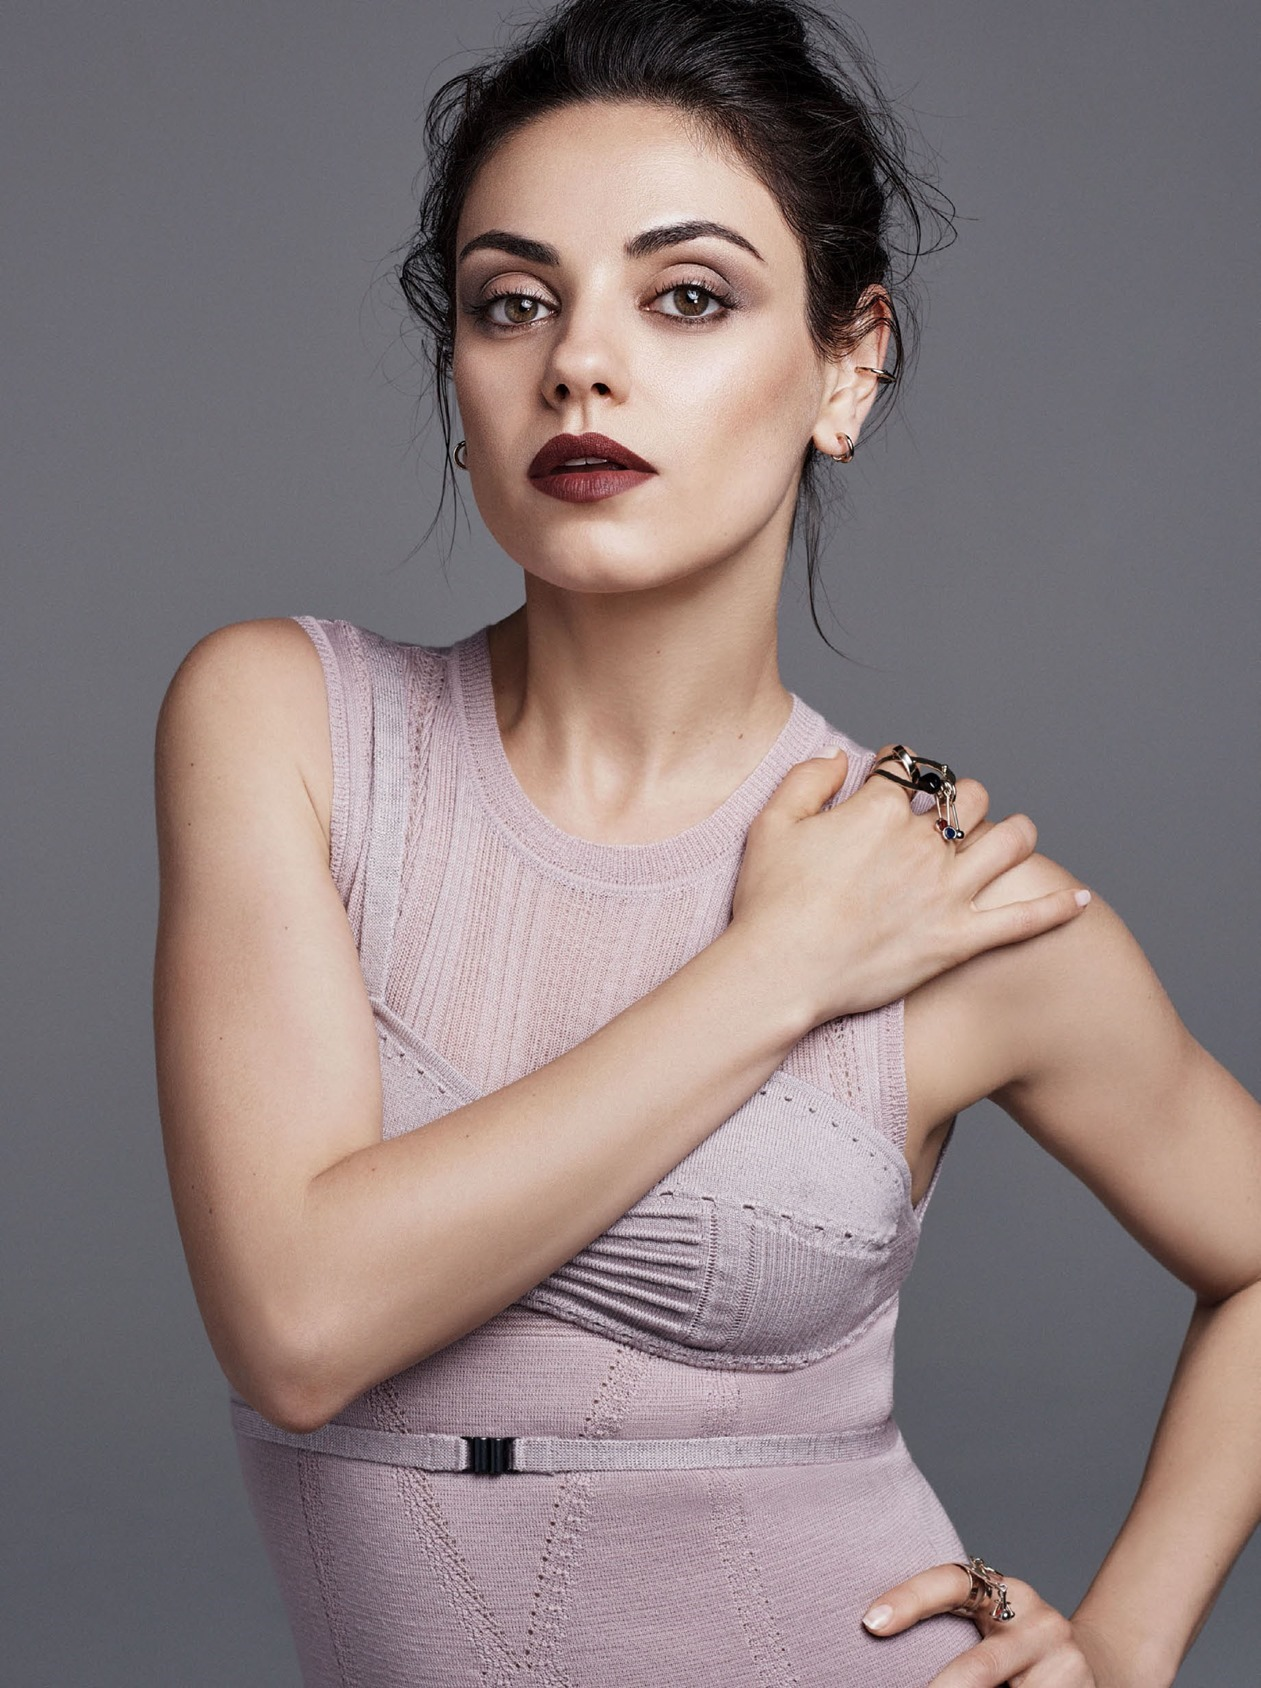 glamour magazine mila kunis by steven pan image amplified. Black Bedroom Furniture Sets. Home Design Ideas